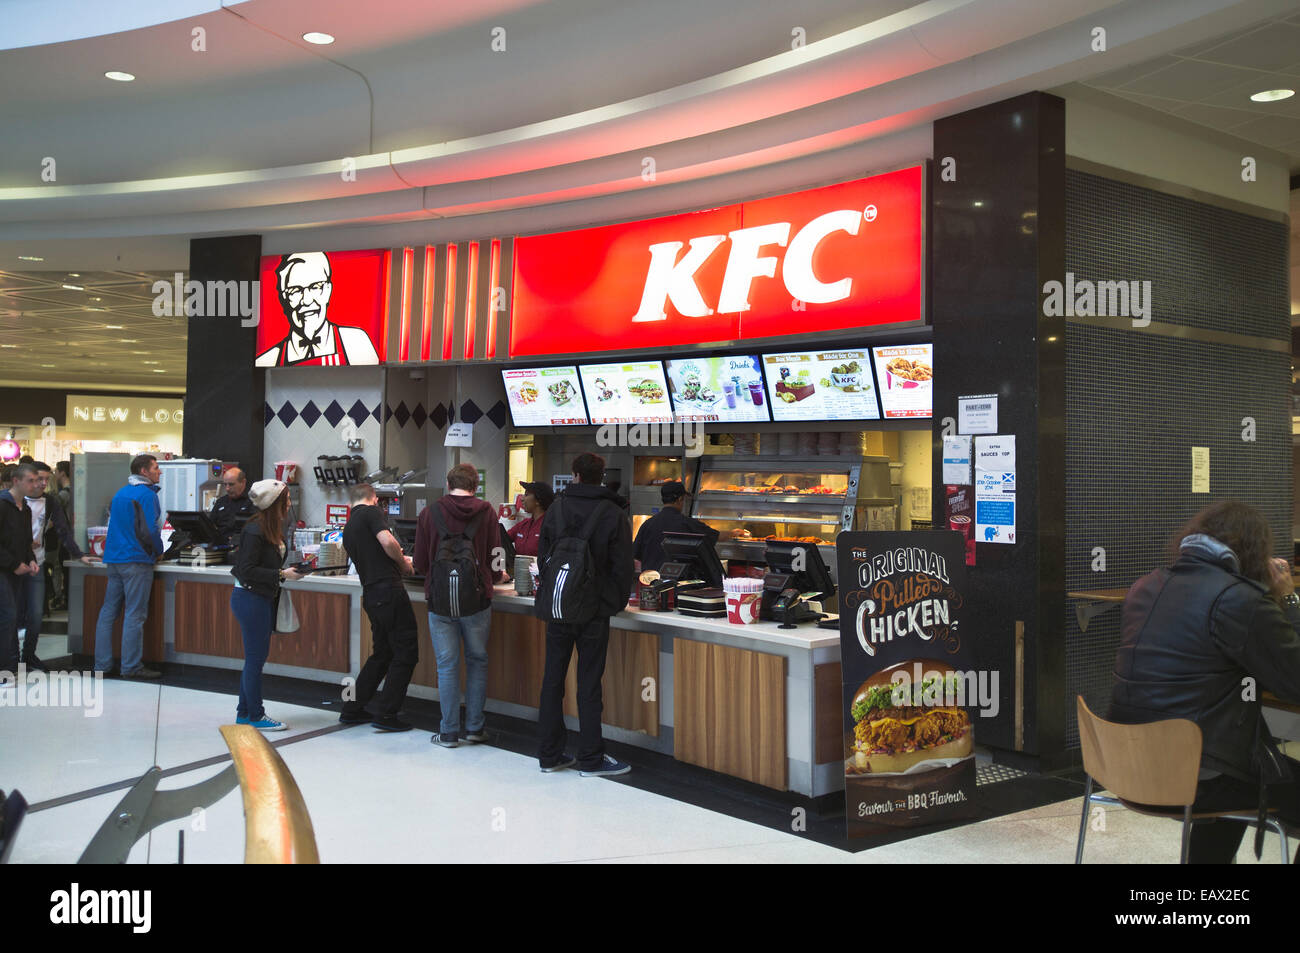 dh KFC FASTFOOD UK Kentucky Fried Chicken outlet Inverness people being served restaurant - Stock Image